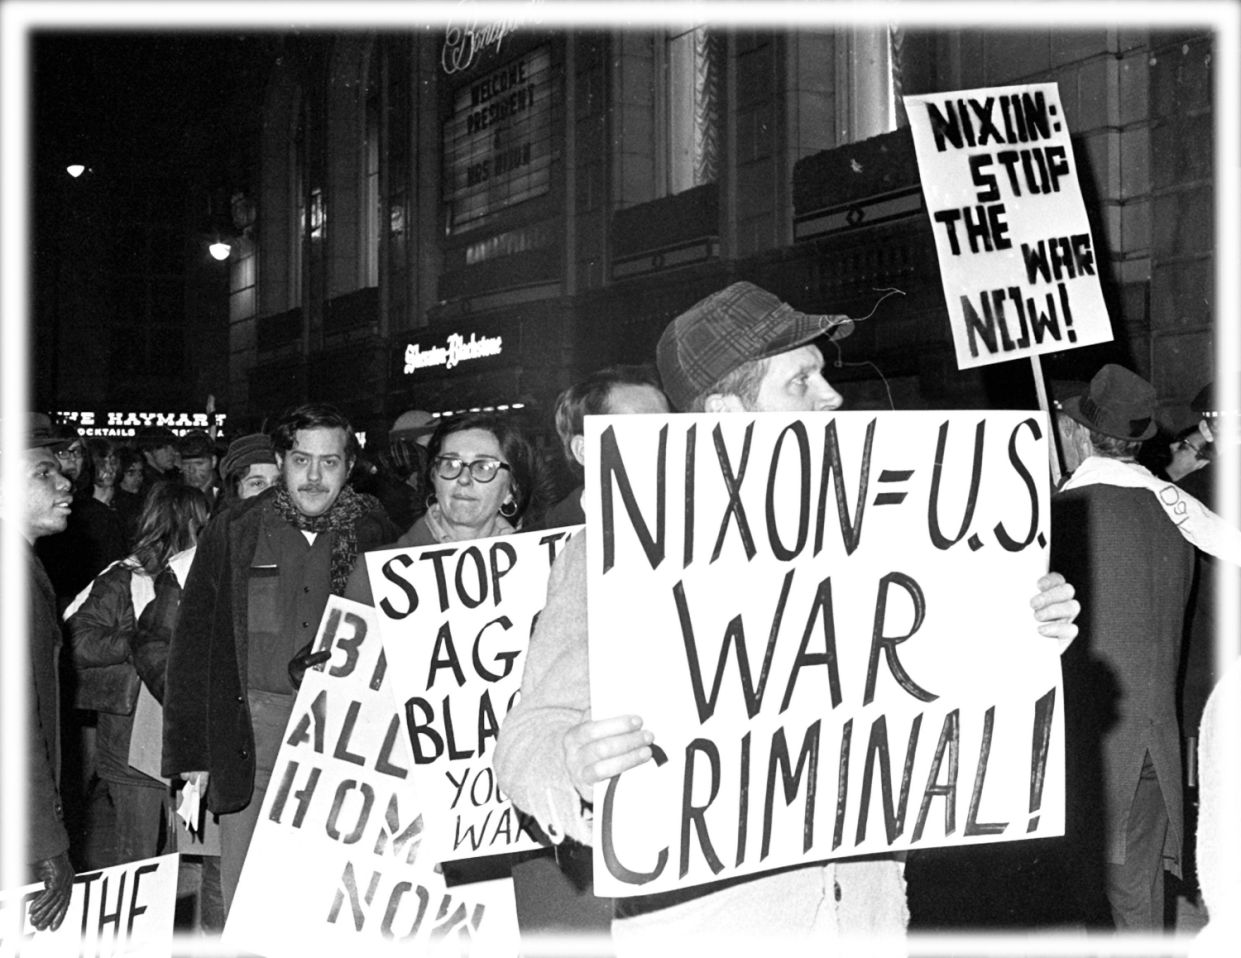 Nixon protesters gather outside Chicago's Blackstone Hotel, Feb. 5, 1970. (Photo: AP; digitally enhanced by Yahoo News)